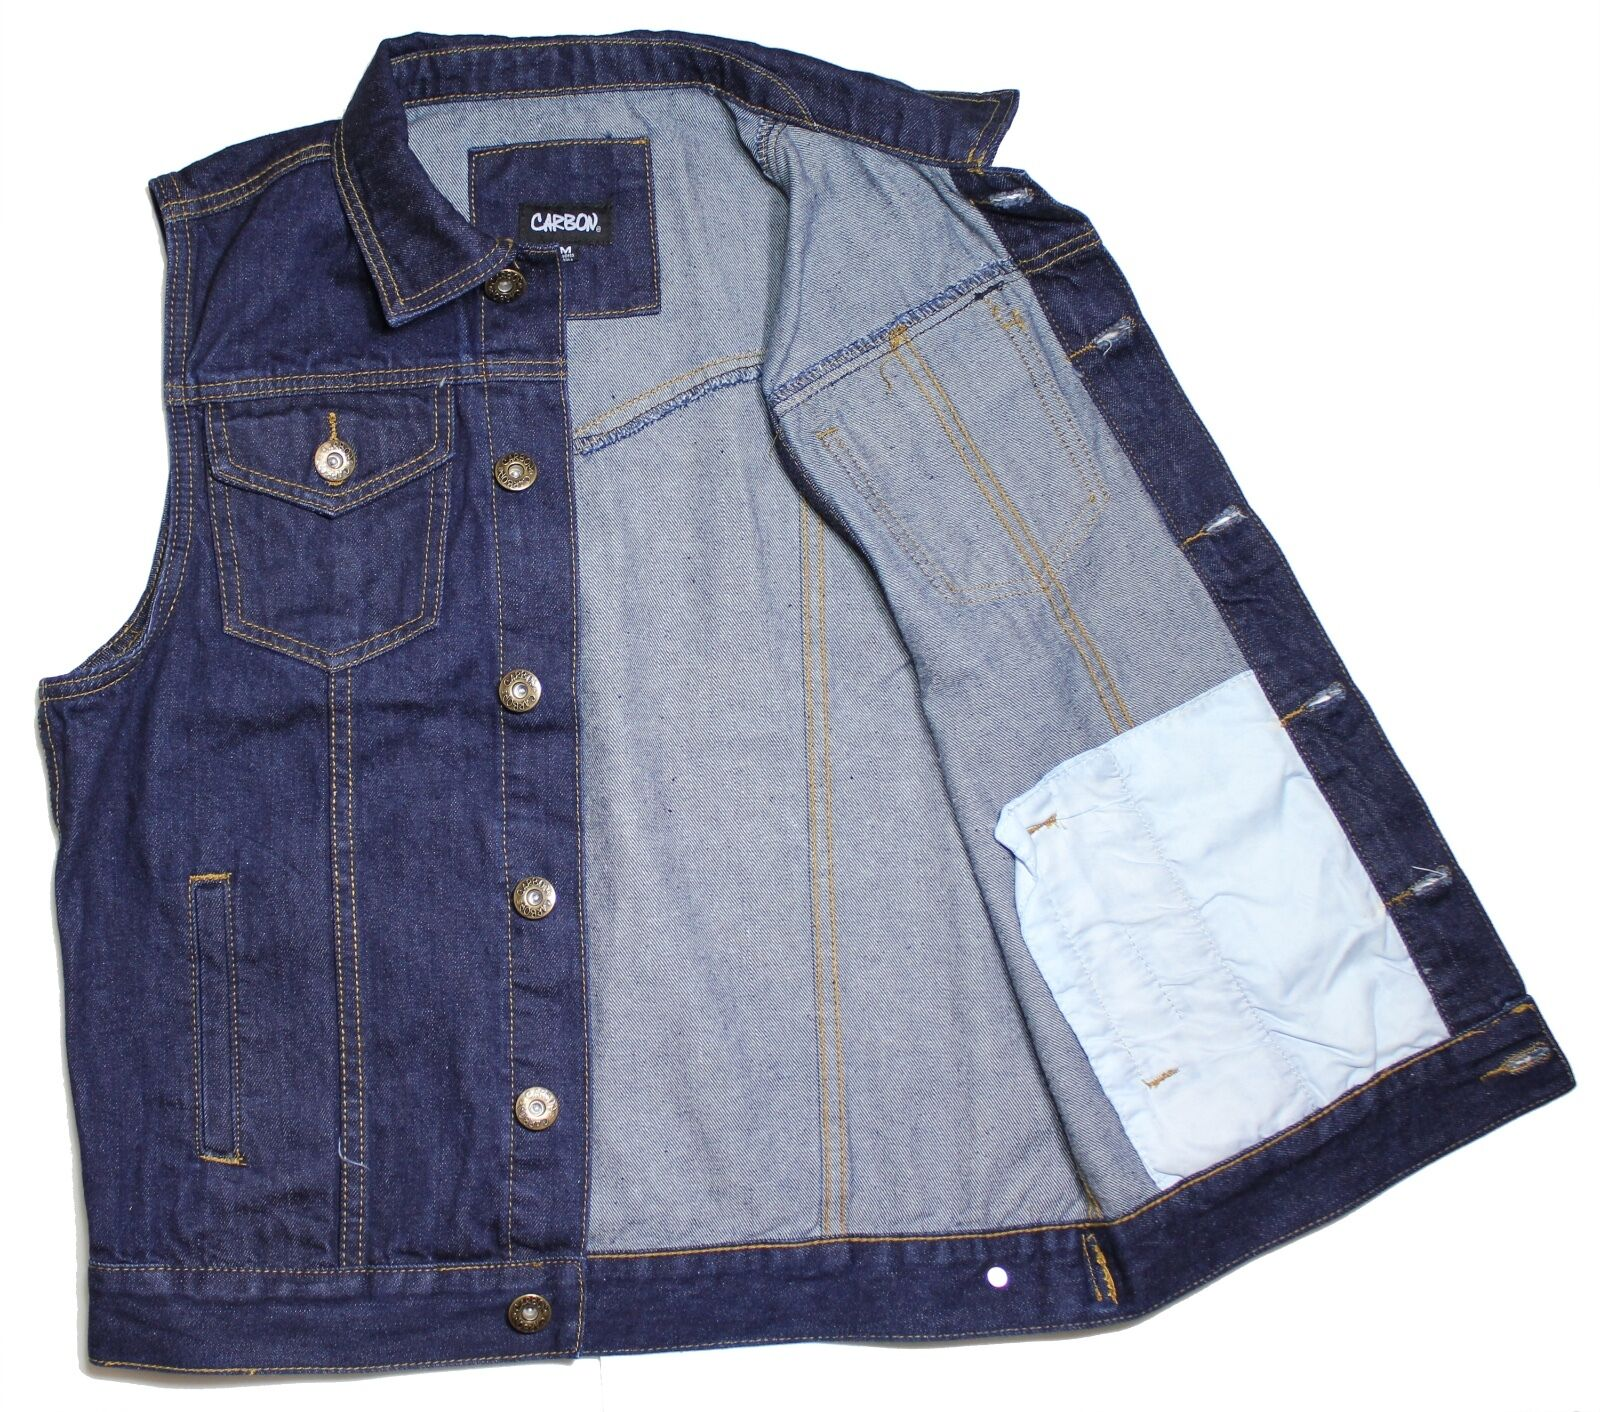 MEN'S DENIM BIKER MOTORCYCLE VEST JACKET DK.BLUE .